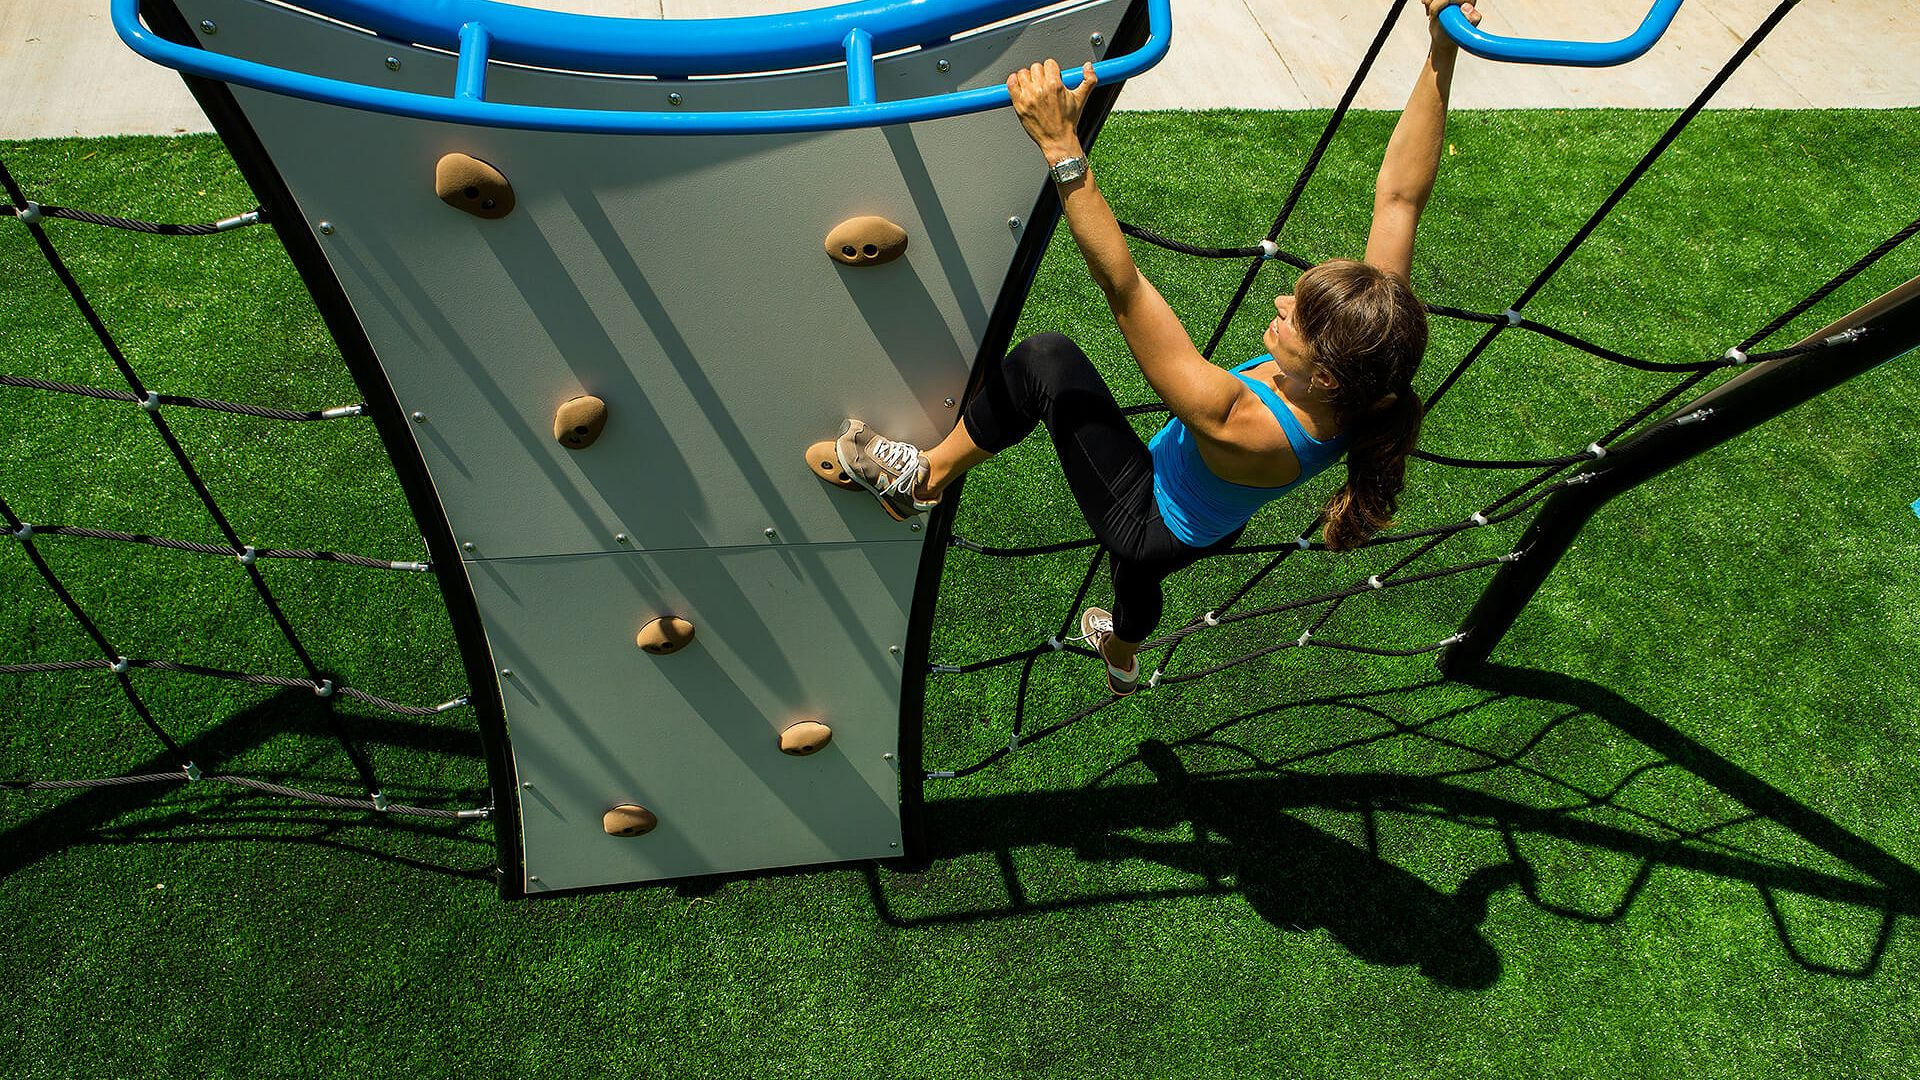 The Challenge Course outdoor fitness equipment lets you compete with friends and family.